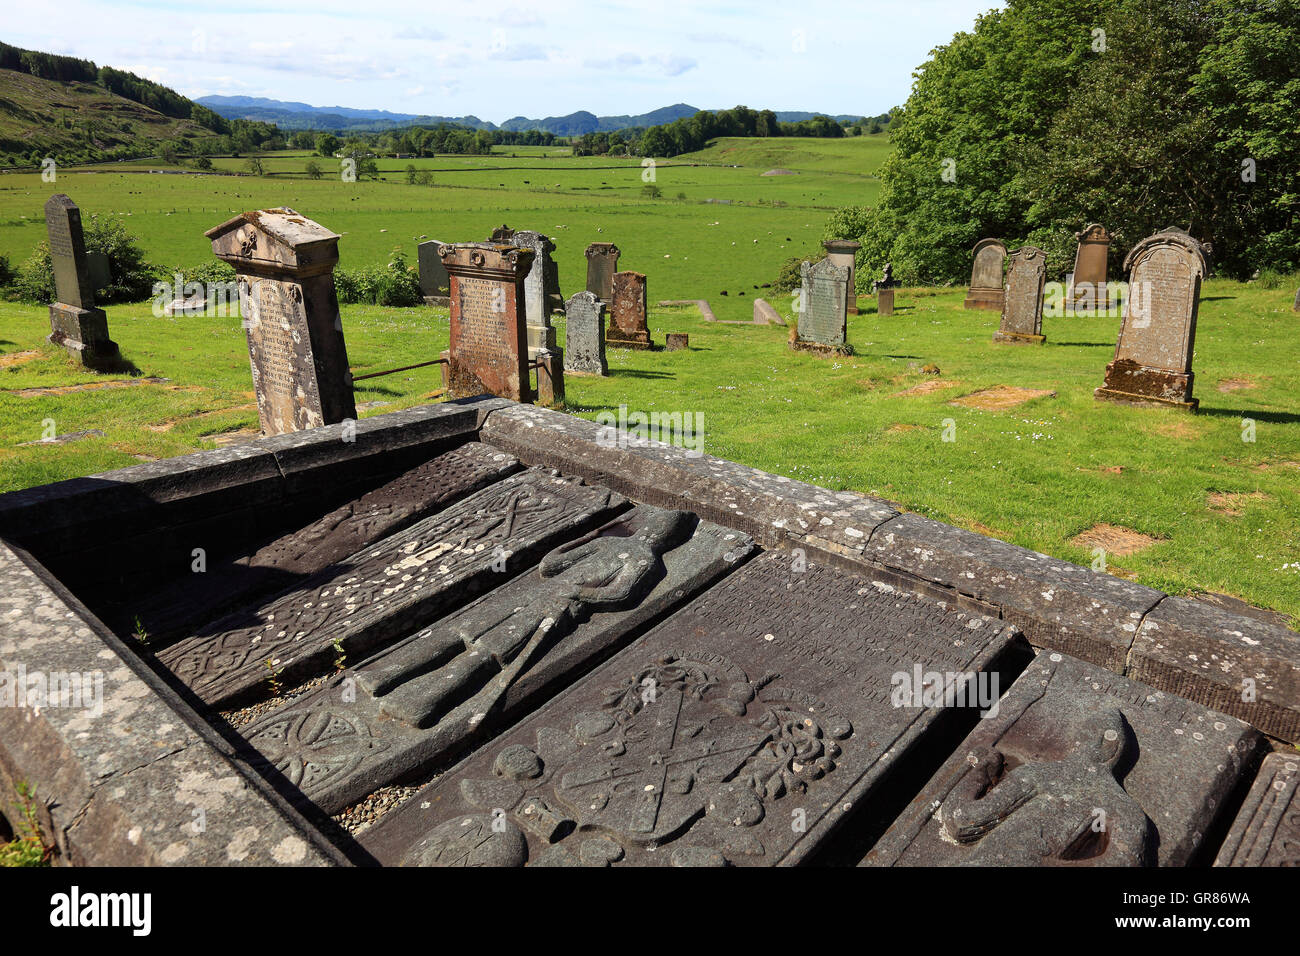 Scotland, cemetery of Kilmartin, crypt with more than 500 year-old grave records - Stock Image